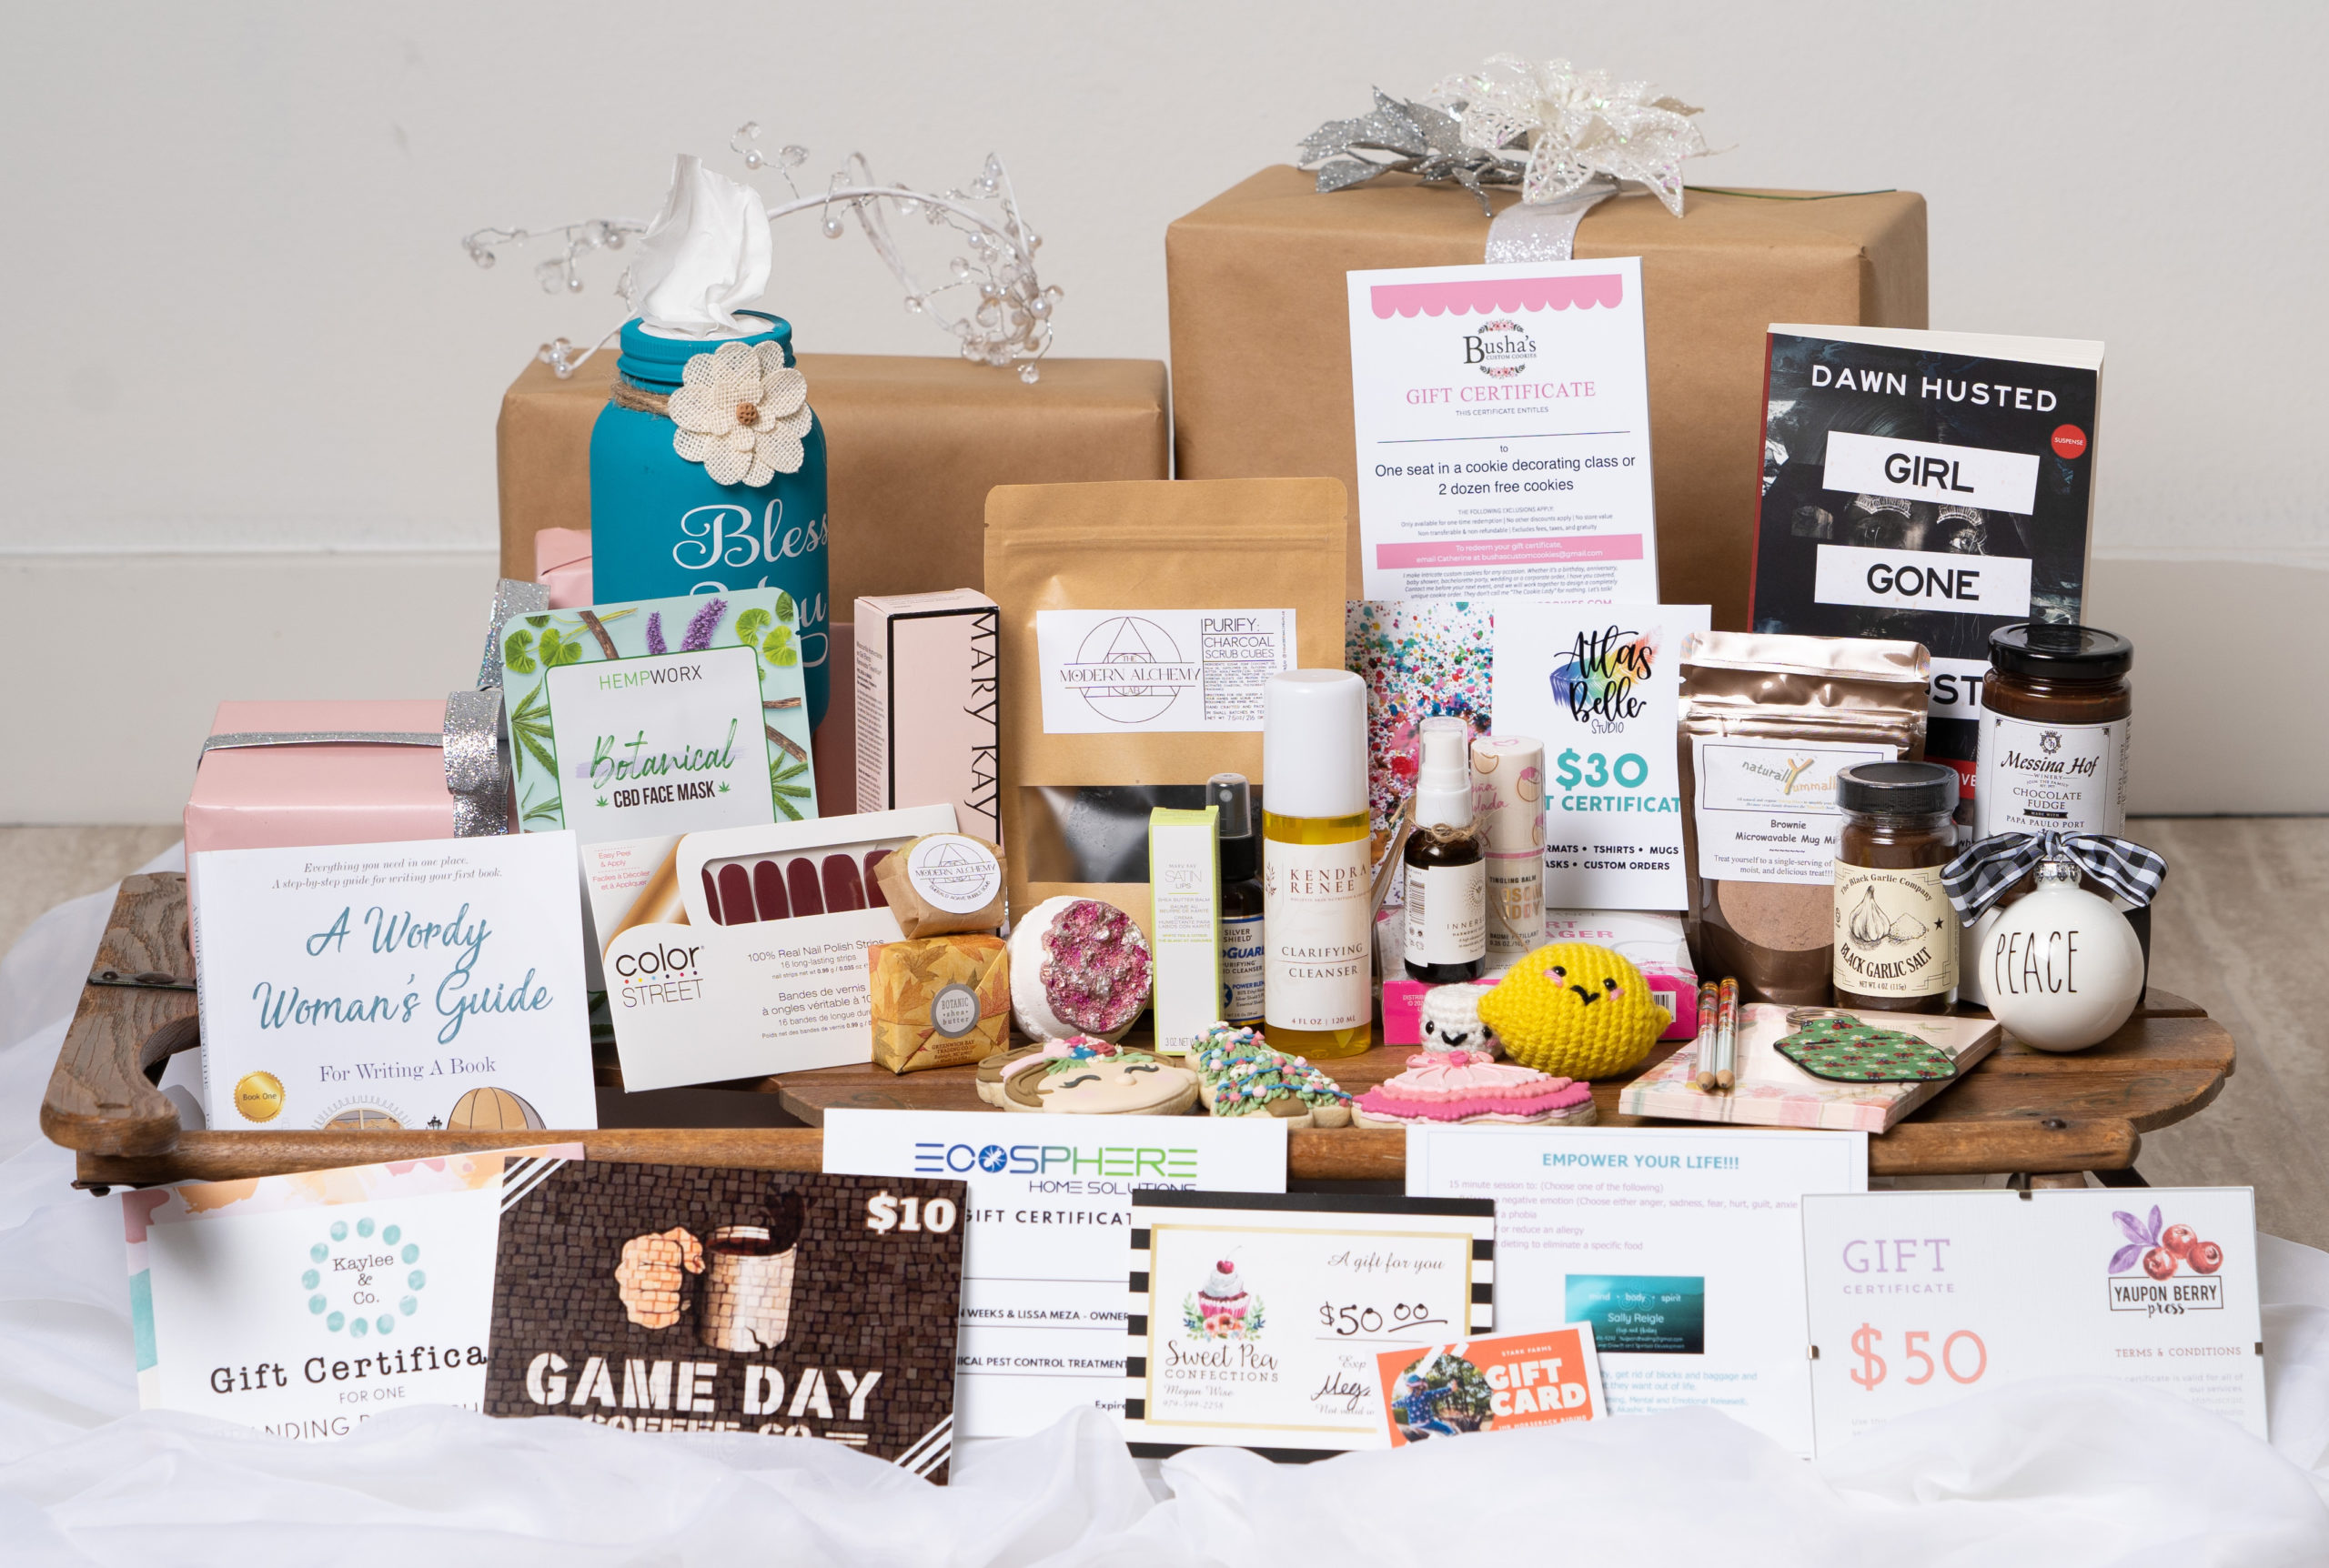 WE BCS Creates Holiday Boxes to Highlight Local Women Entrepreneurs And Help Boost Local Economy